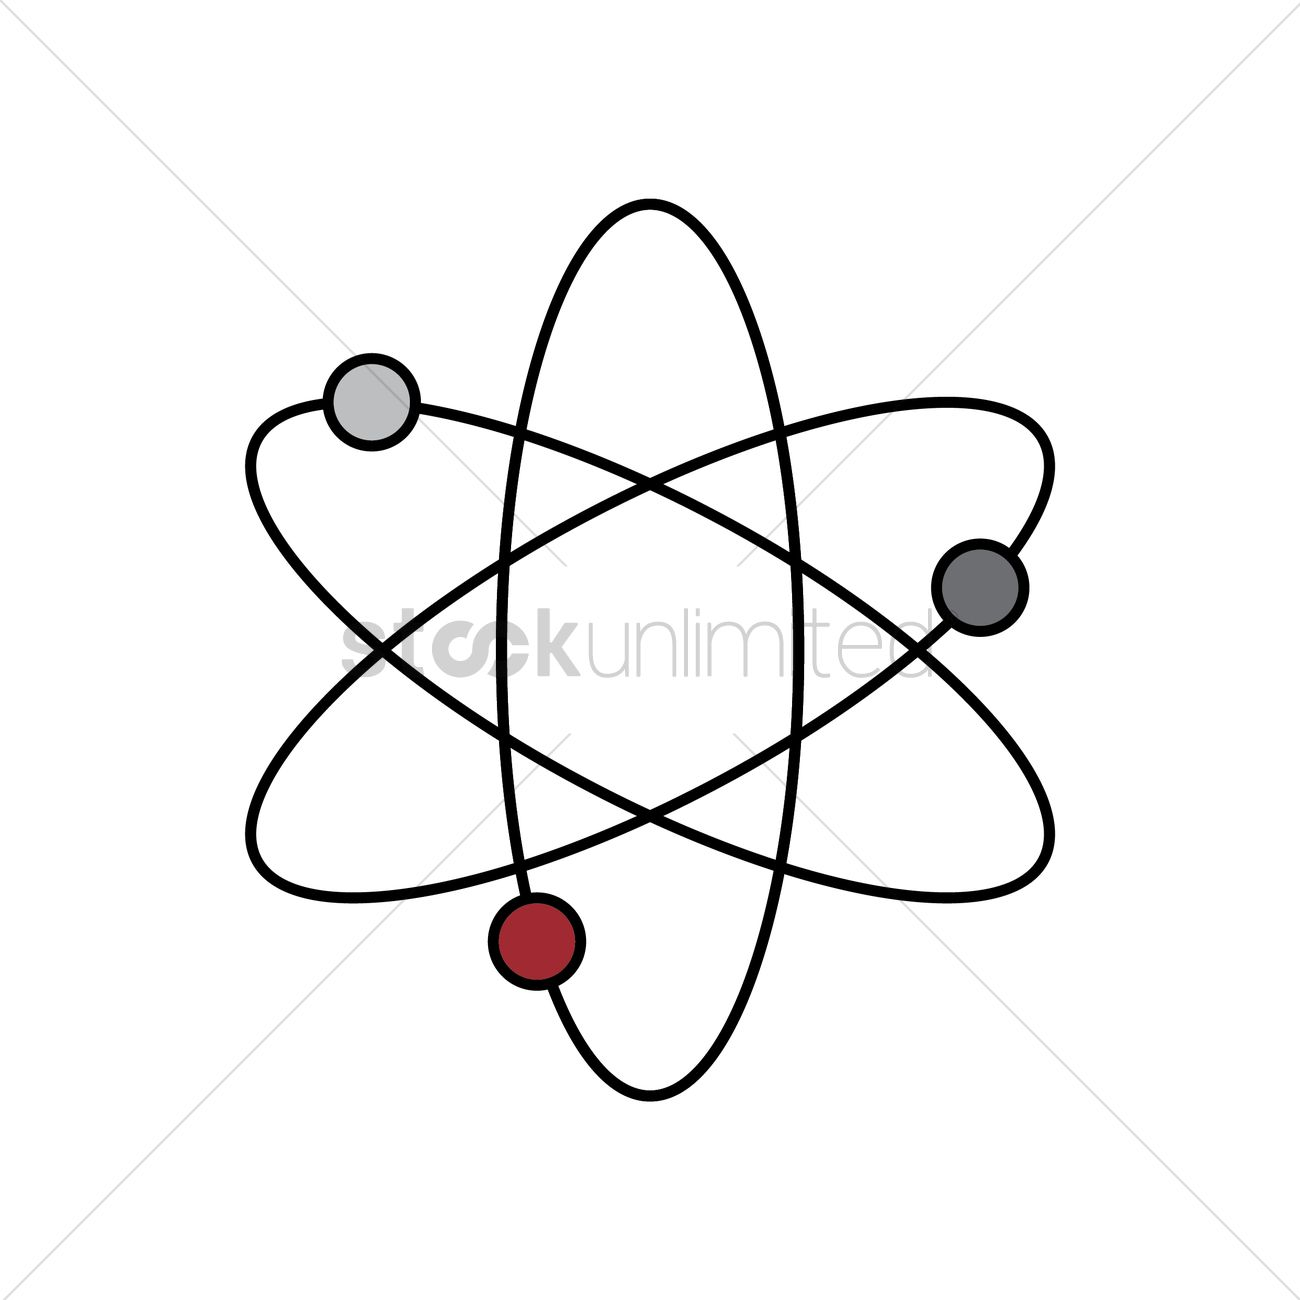 Atomic Structure Vector Image